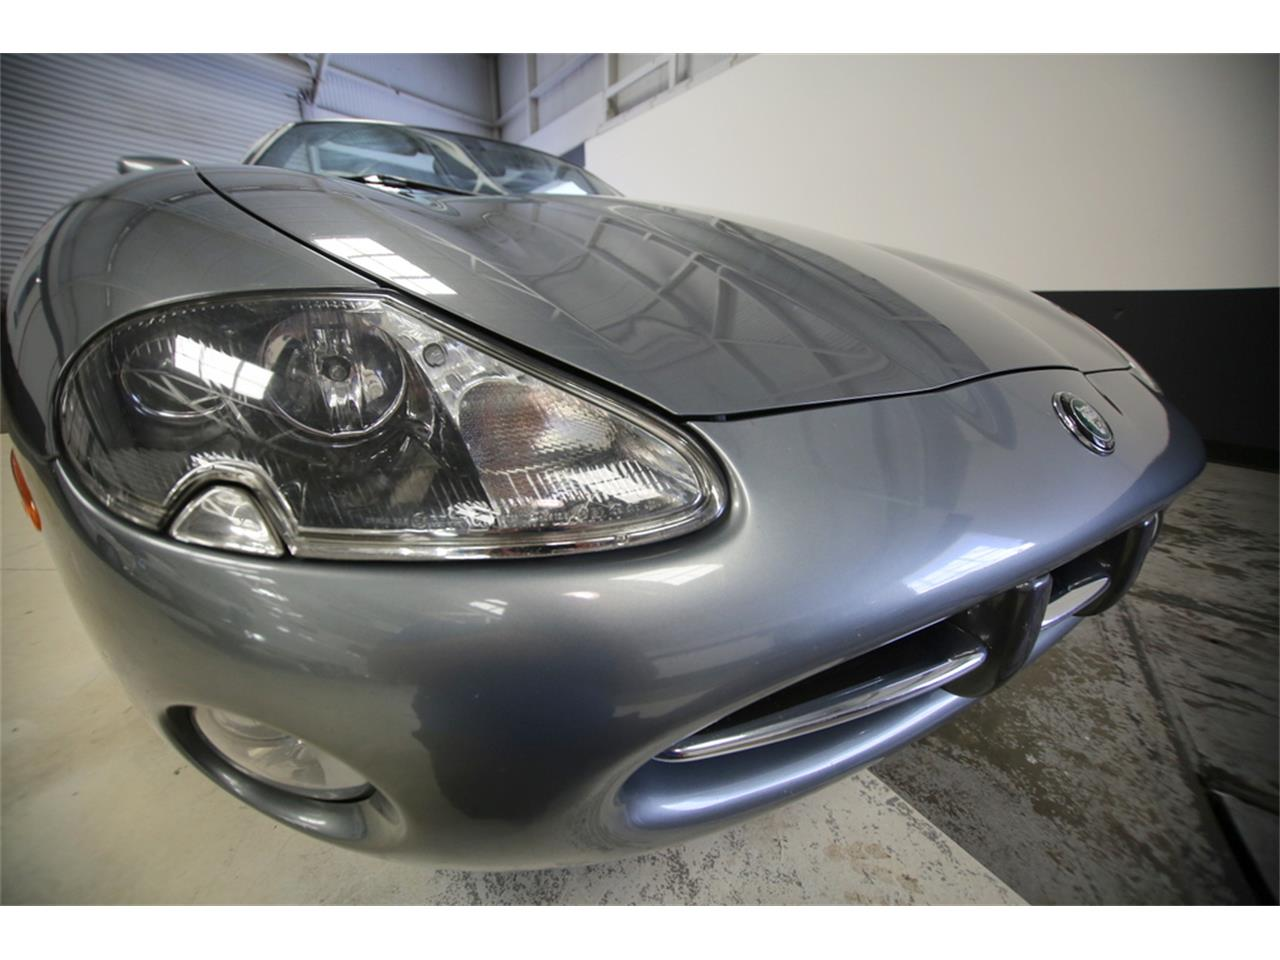 Large Picture of '03 XK8 located in Fairfield California - $9,000.00 - LIP4